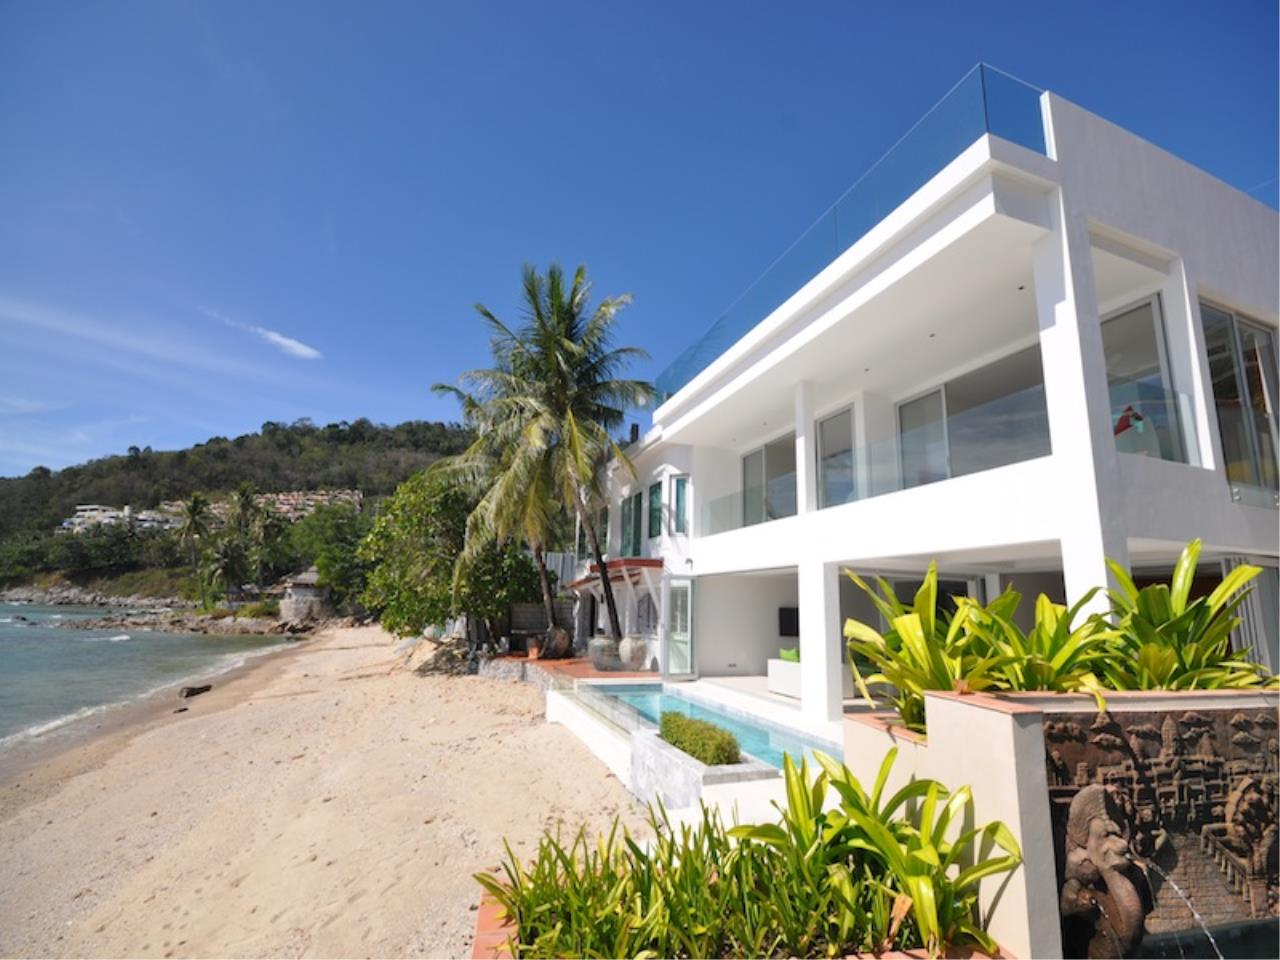 Phuket Immobiliere Agency Co.Ltd. Agency's The Patong Beach House 4